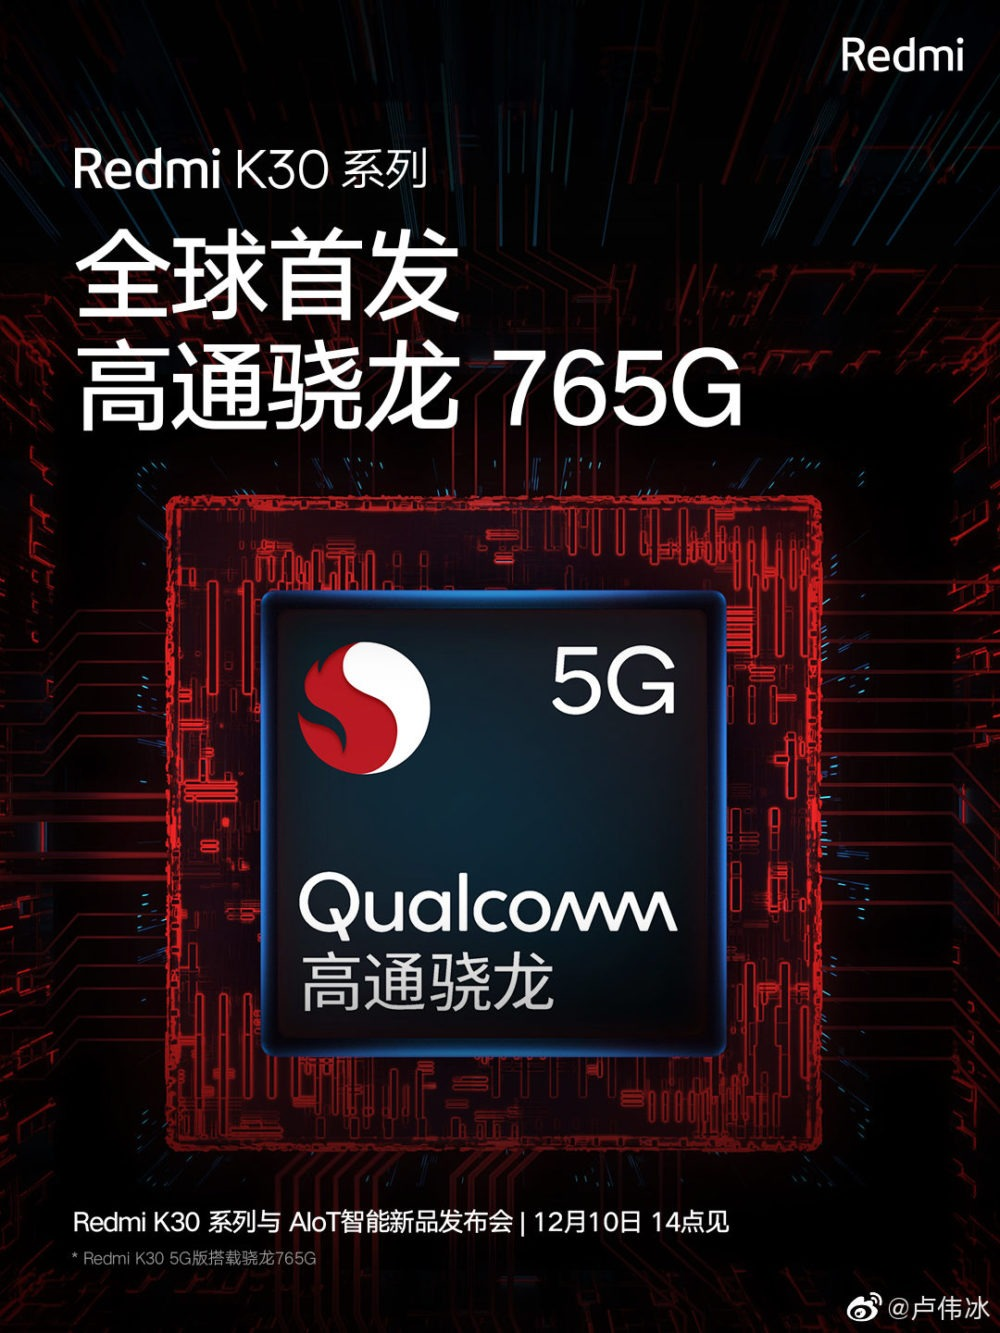 Redmi K30 to launch with Qualcomm Snapdragon 765G SOC